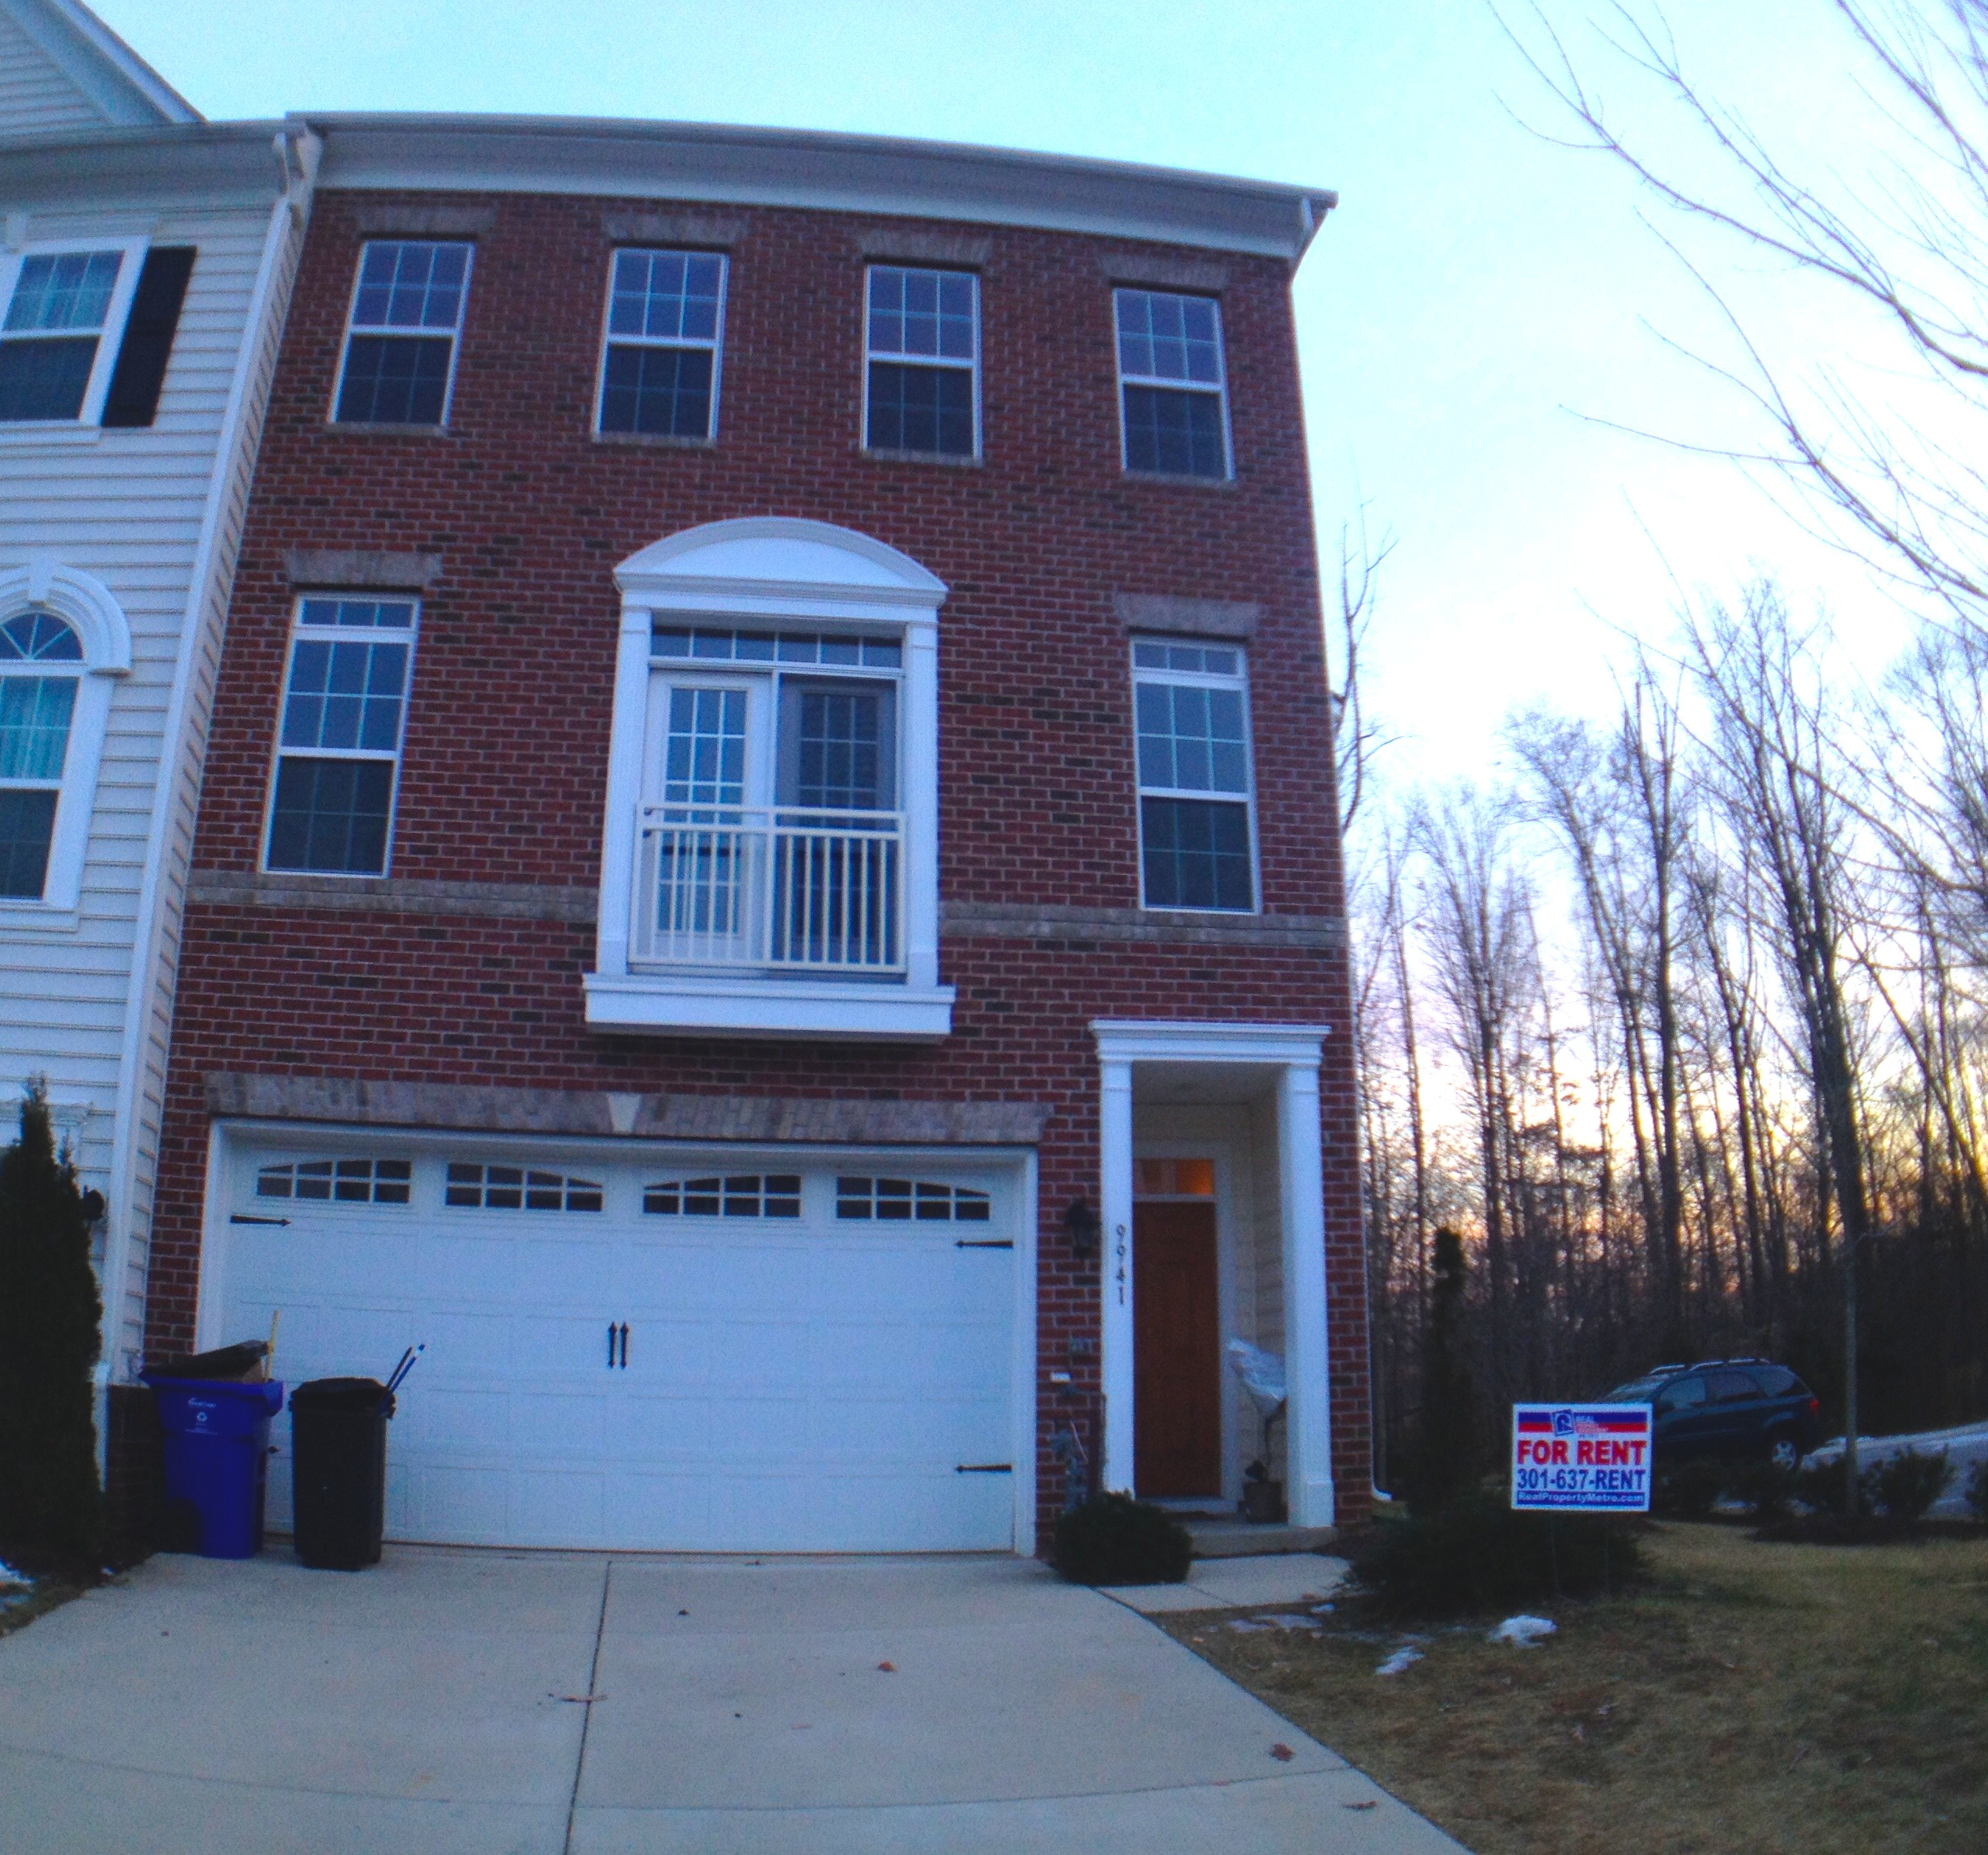 Townhouse for Rent in Laurel